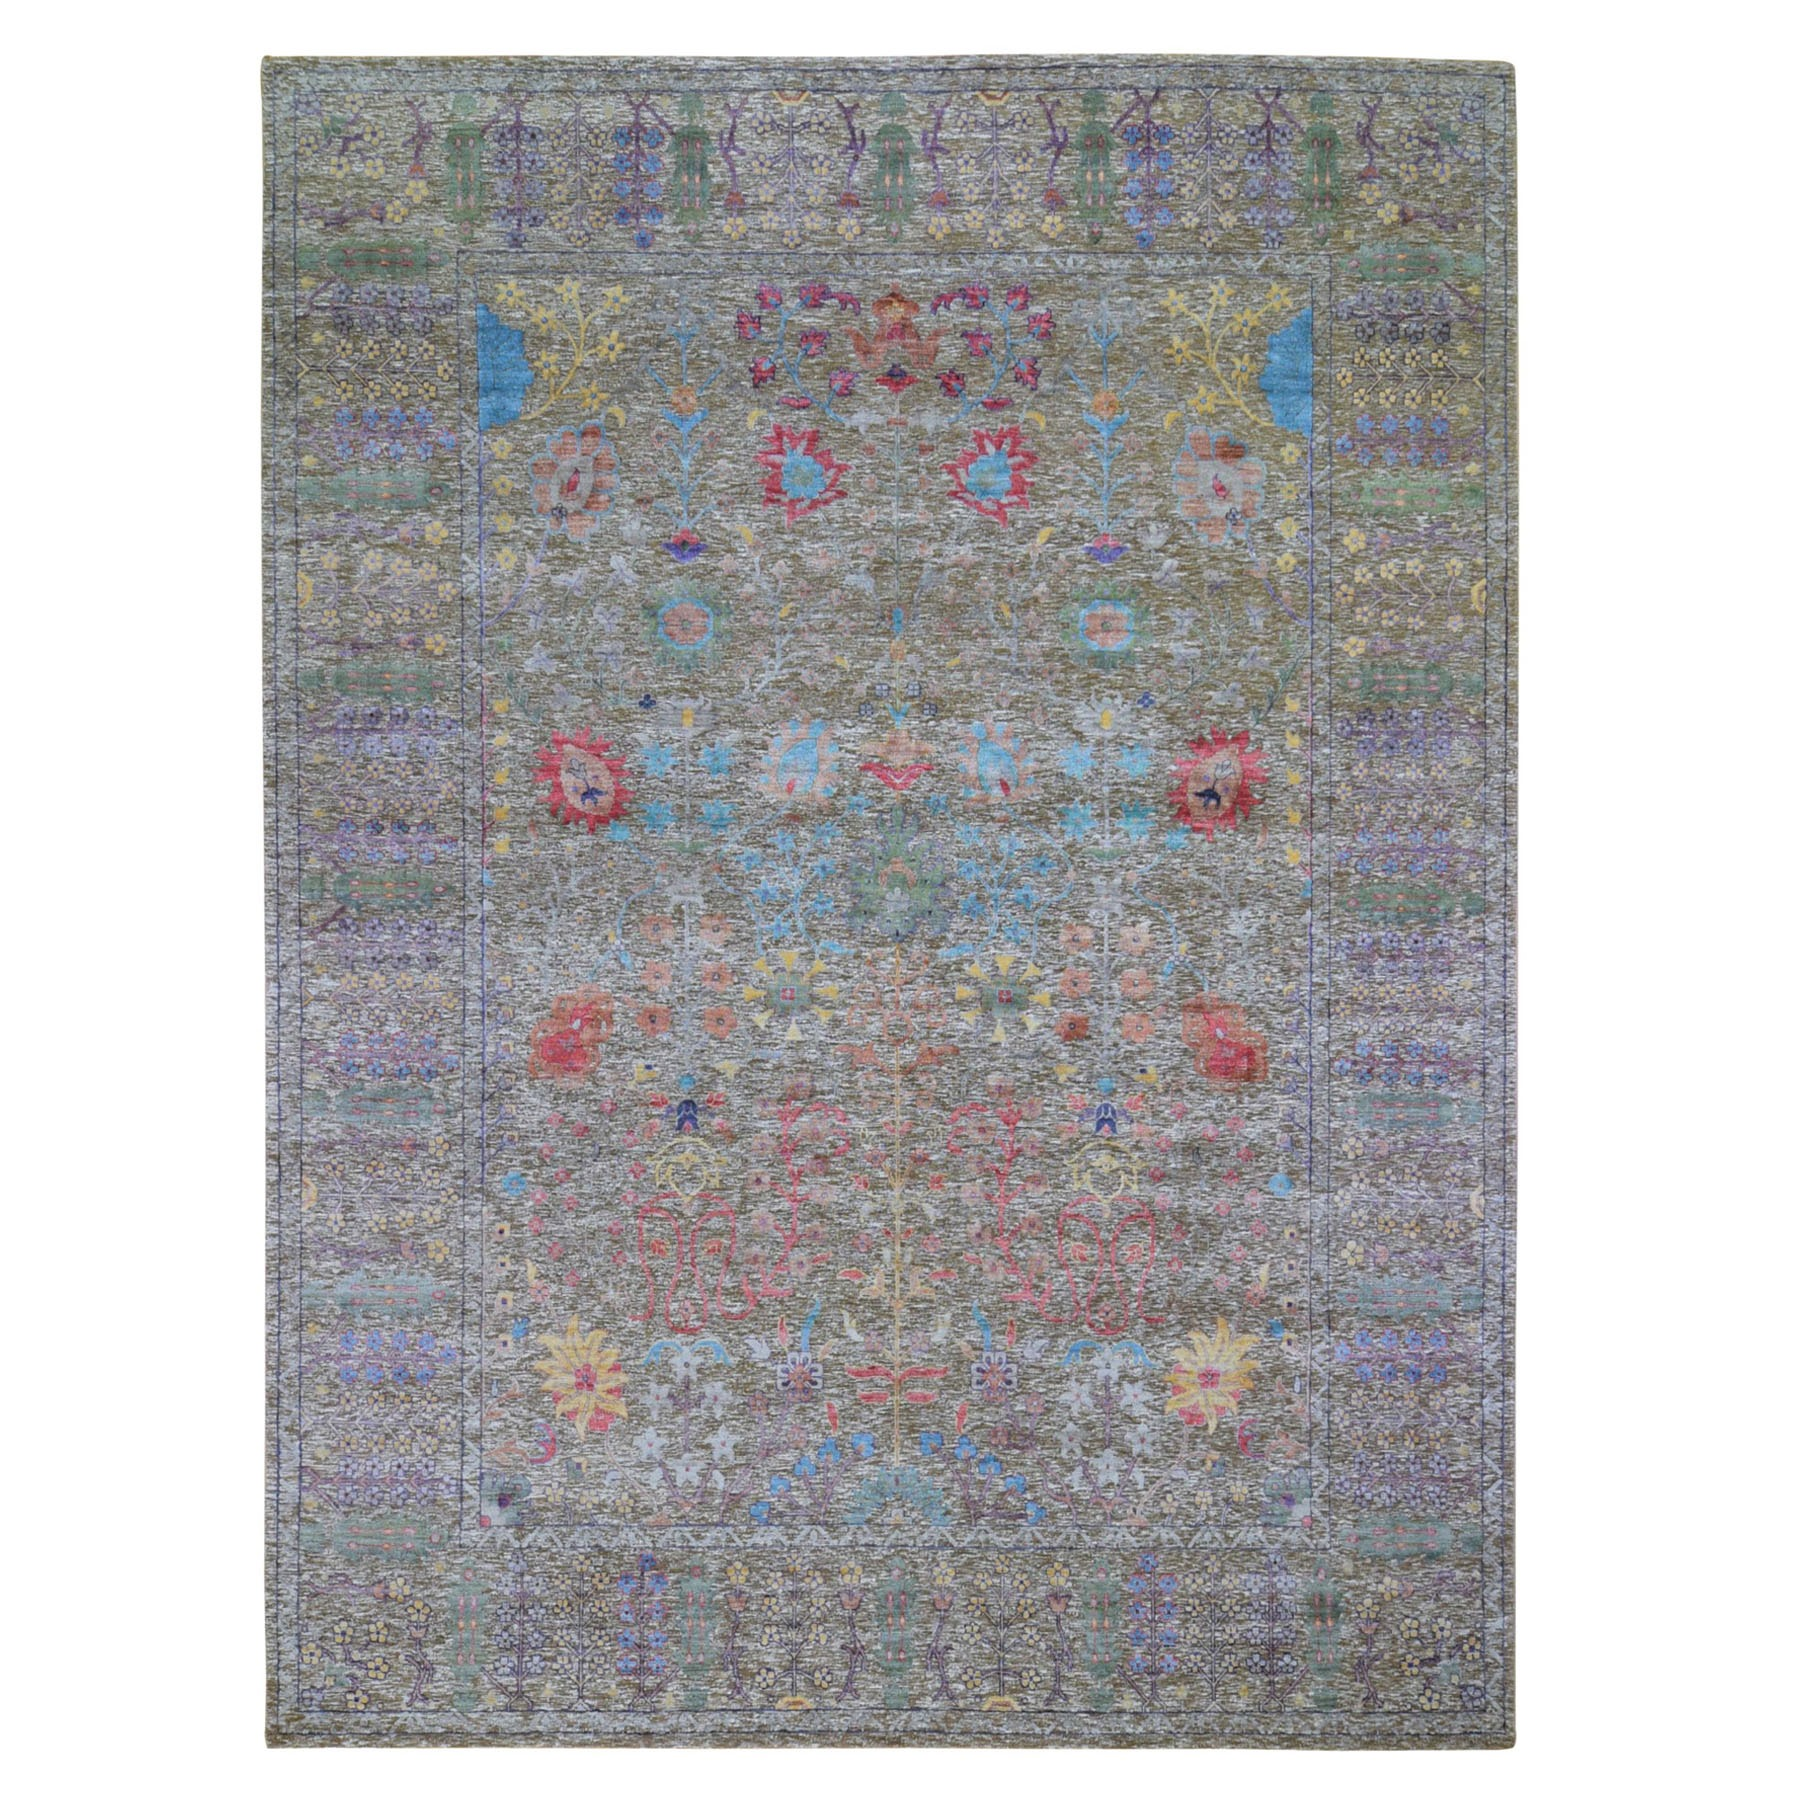 9'X12' Honey Brown Silk With Textured Wool Vaze Design Hand Knotted Oriental Rug moad9c79